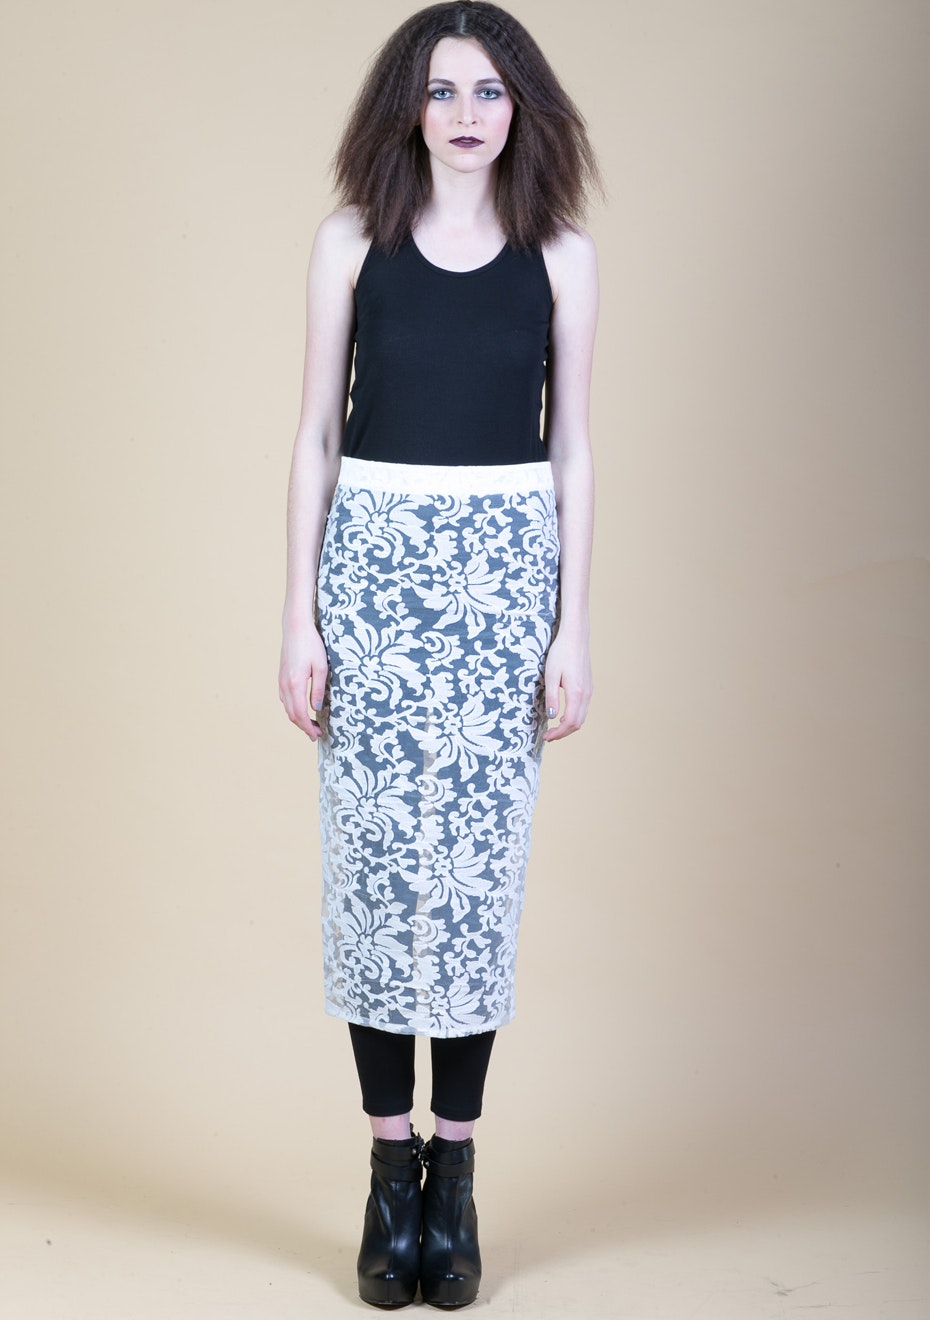 X-Plain - Lace Pencil Skirt - Cast Iron